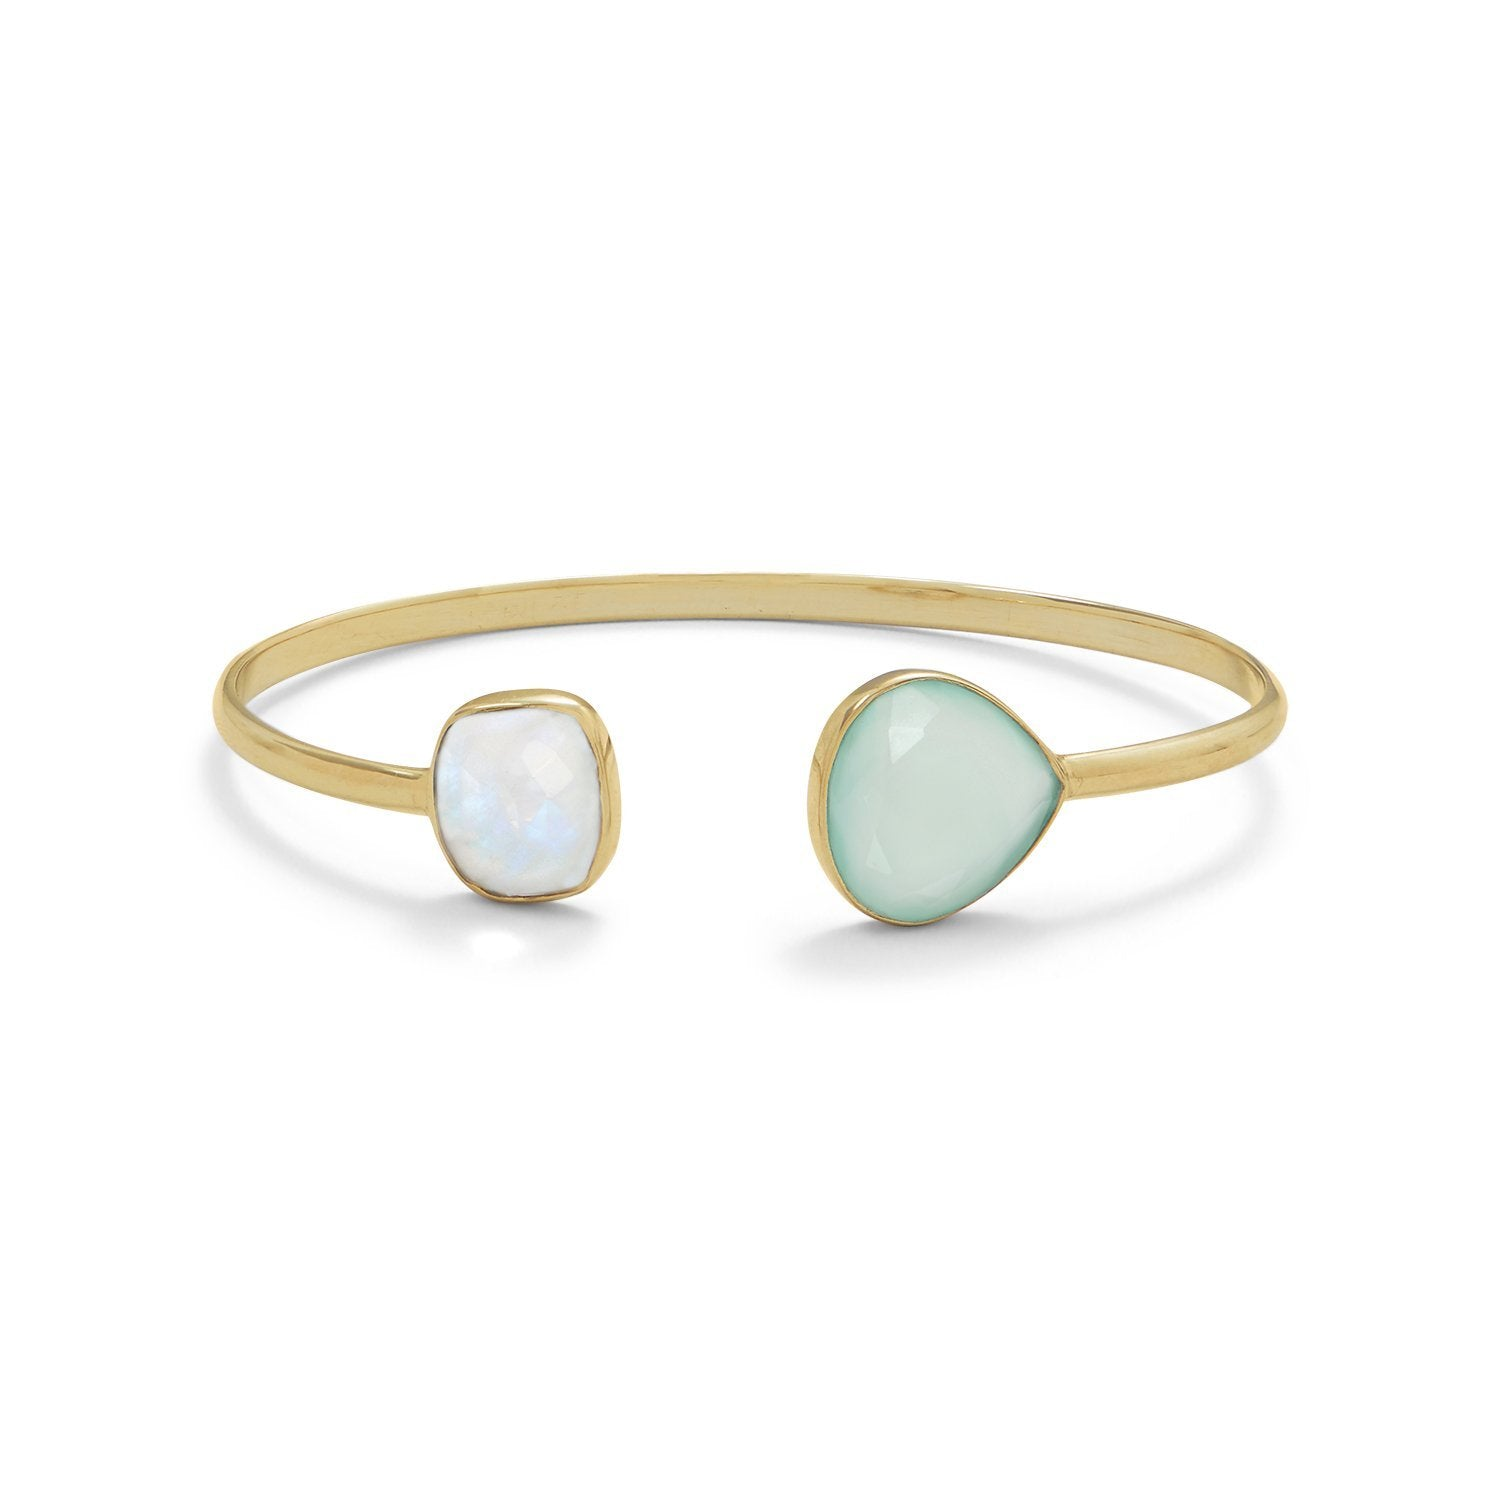 18k Gold Moonstone & Chalcedony Open Cuff Bangle